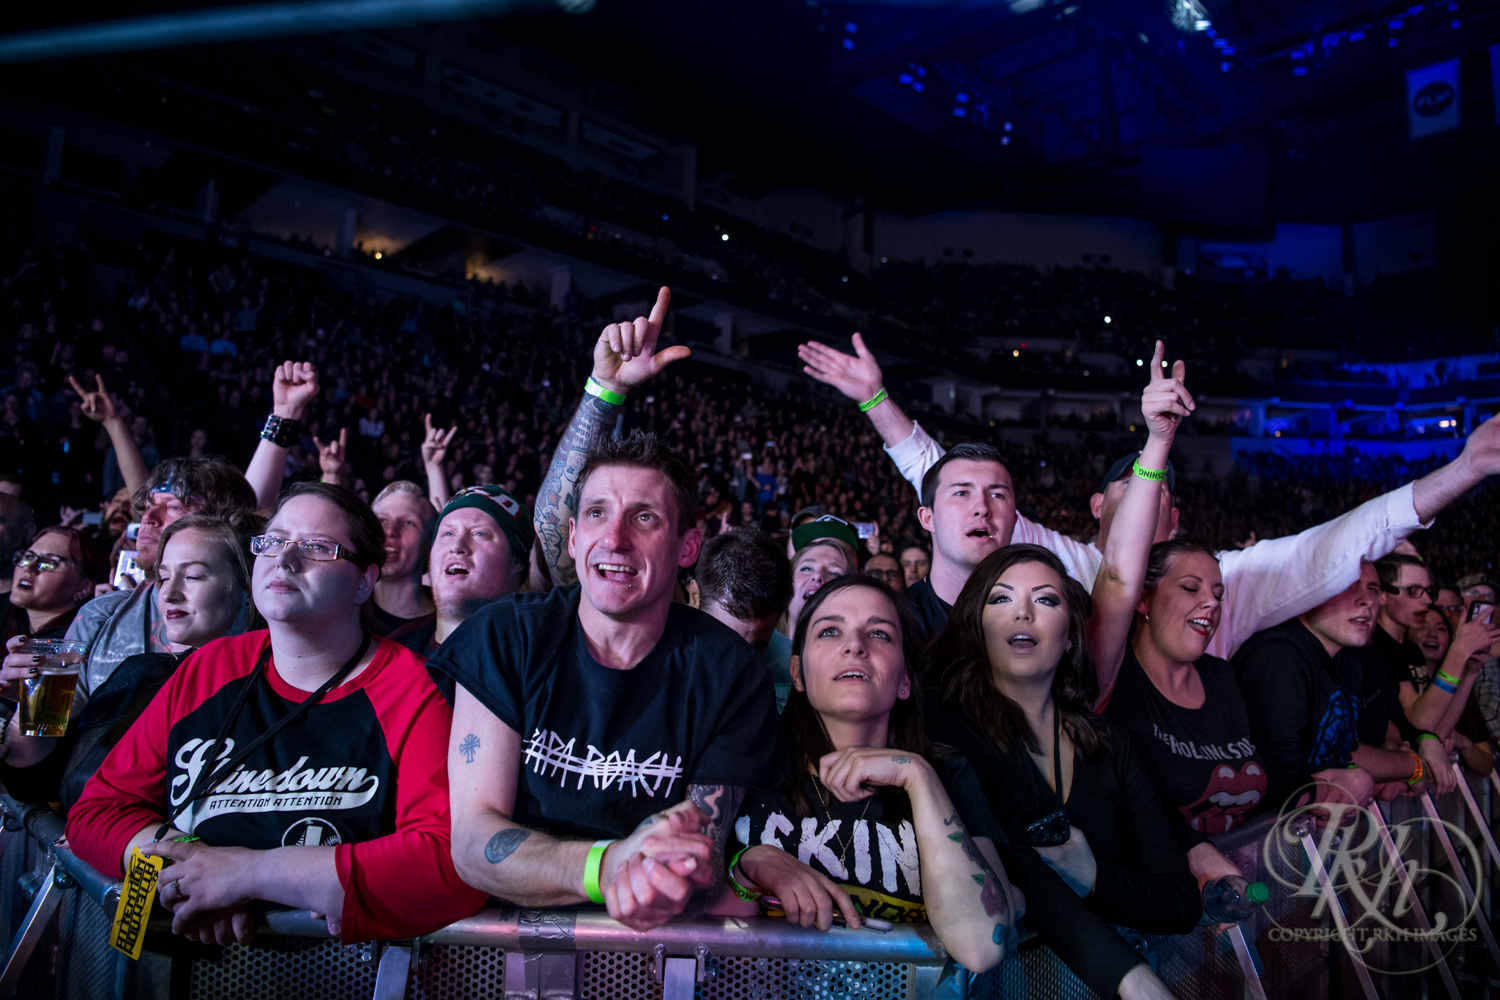 Papa Roach - Minnesota Concert Photography - Target Center - Minneapolis - RKH Images (6 of 16).jpg